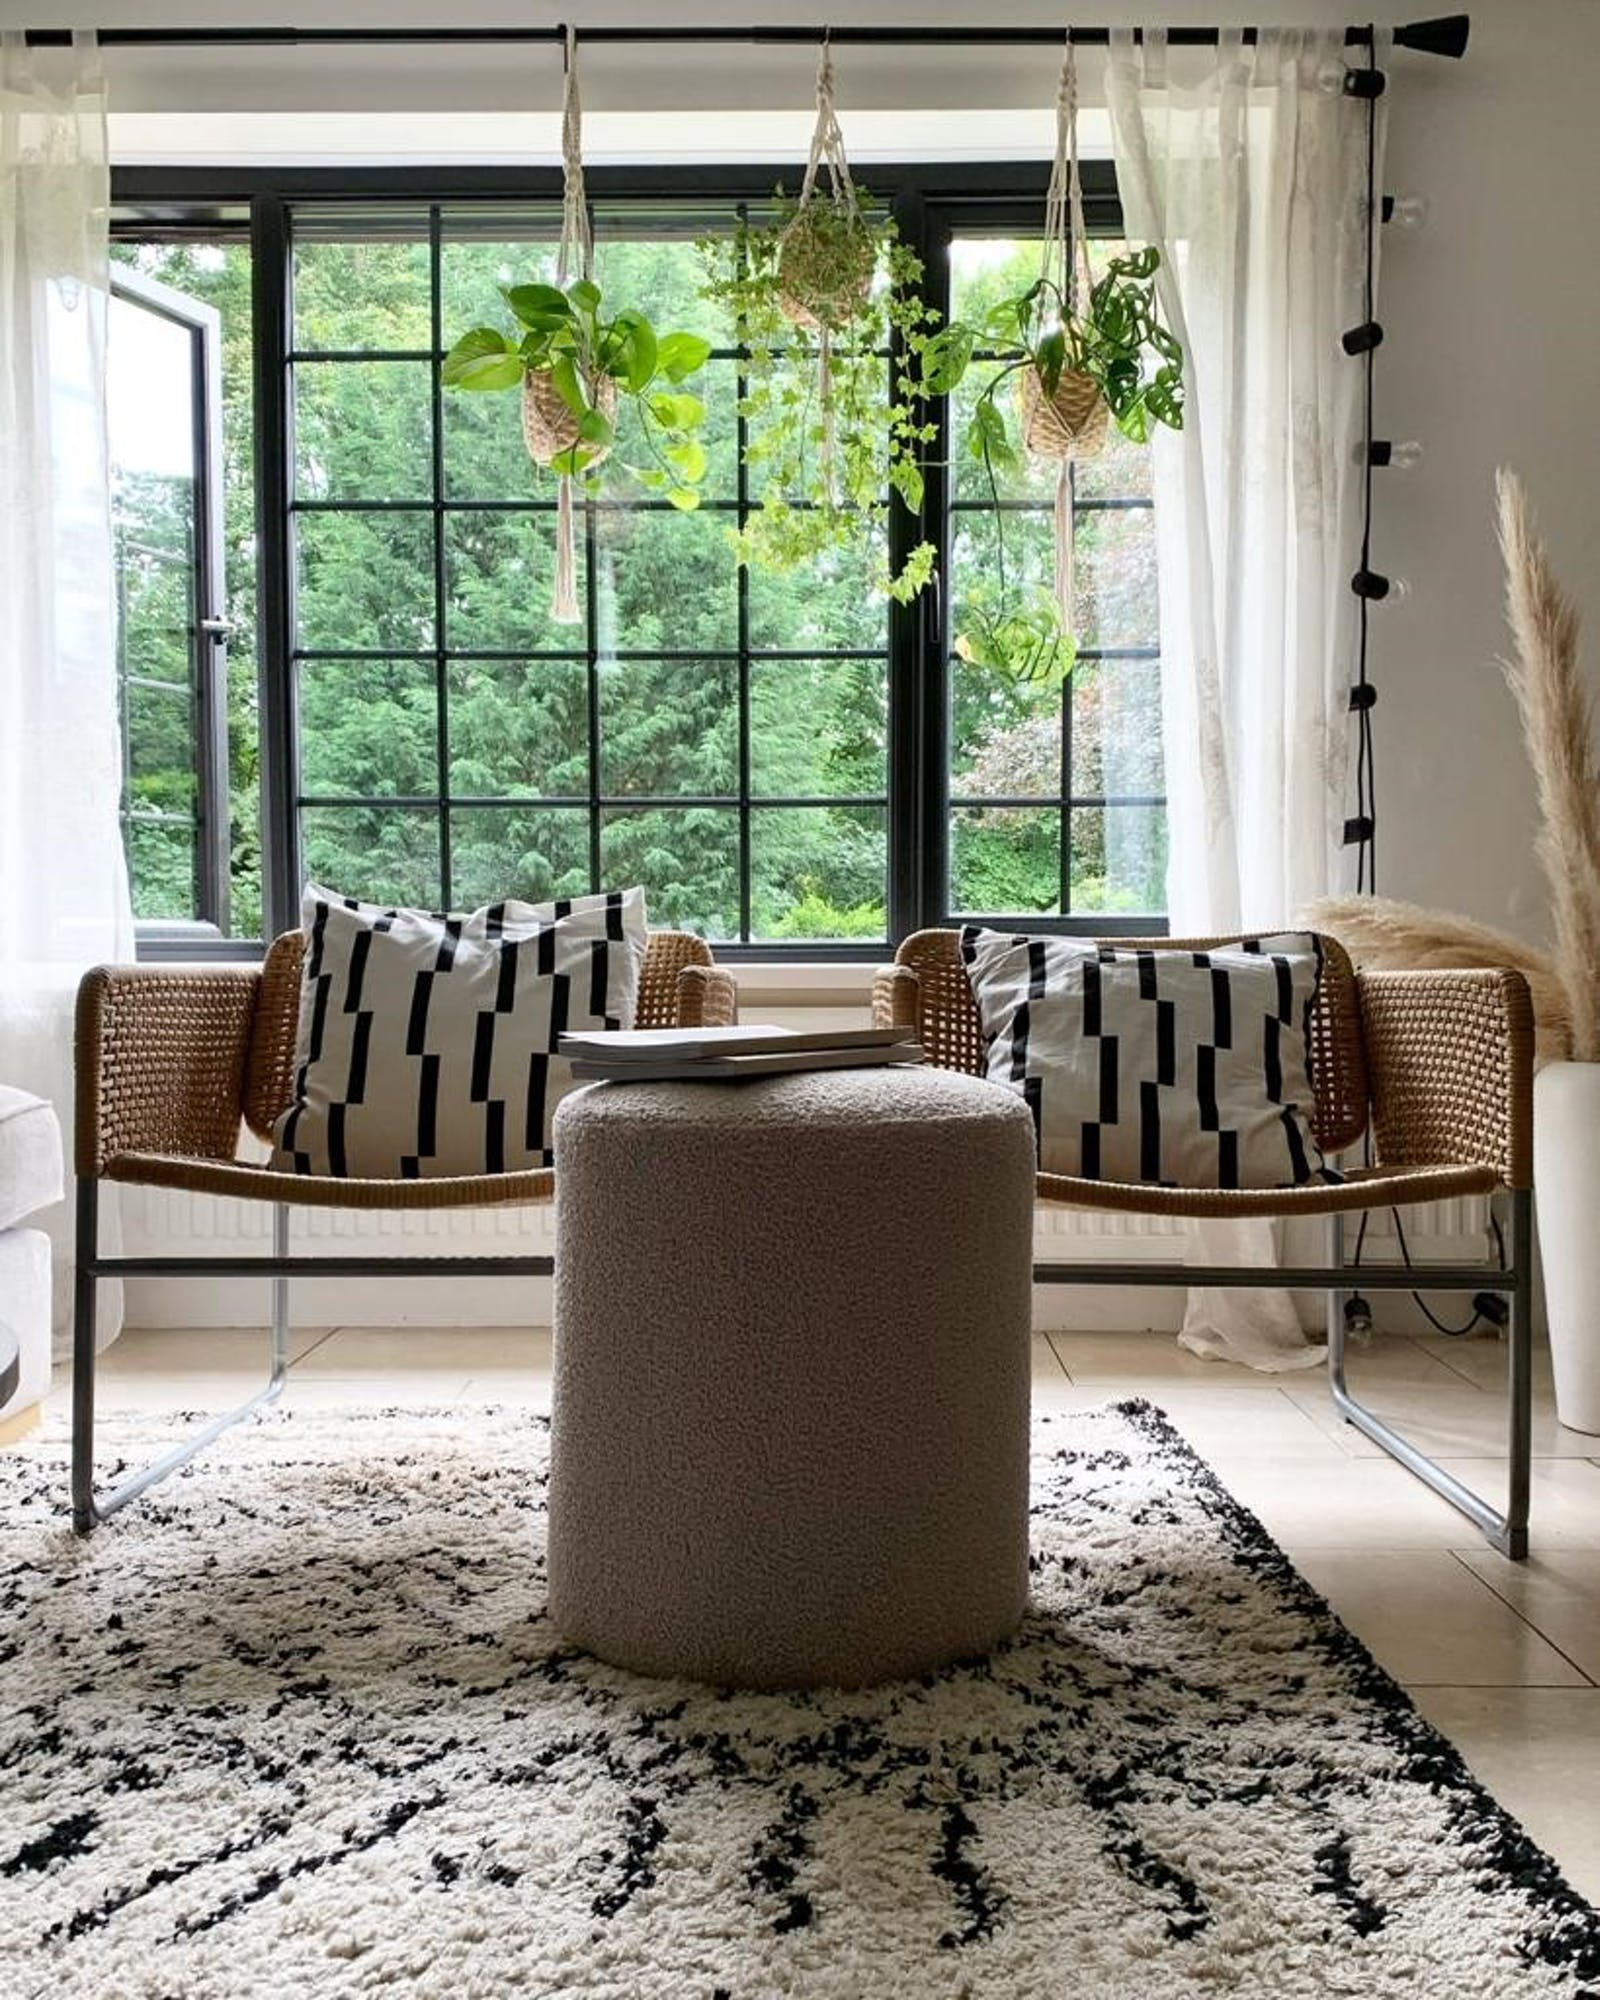 Two chairs in front of big sash windows with black and white patterned cushions